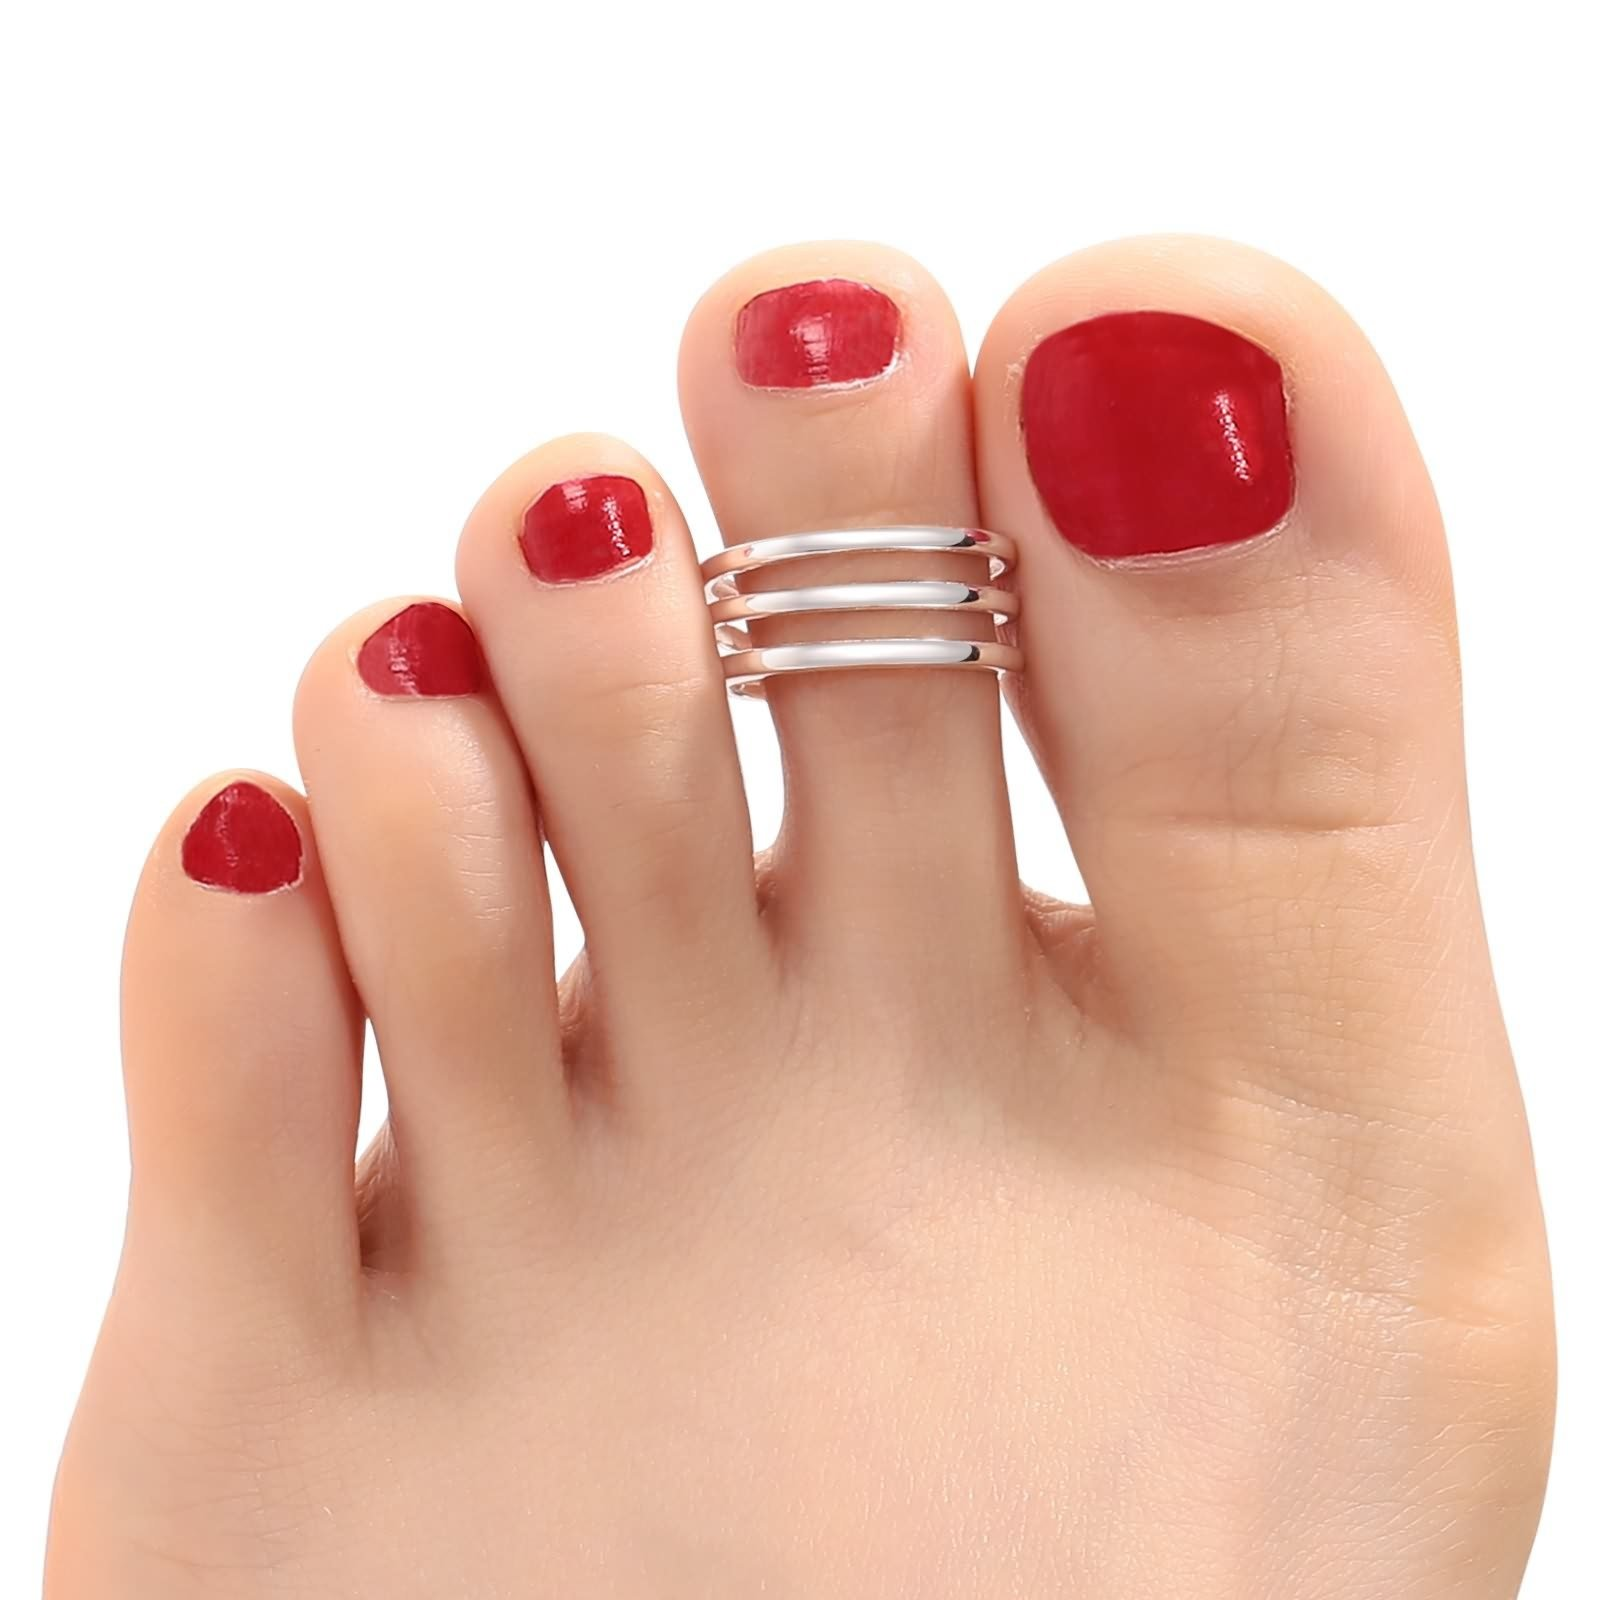 Aokarry 925 Sterling Silver Toe Rings For Women Girls Three Layers Silver